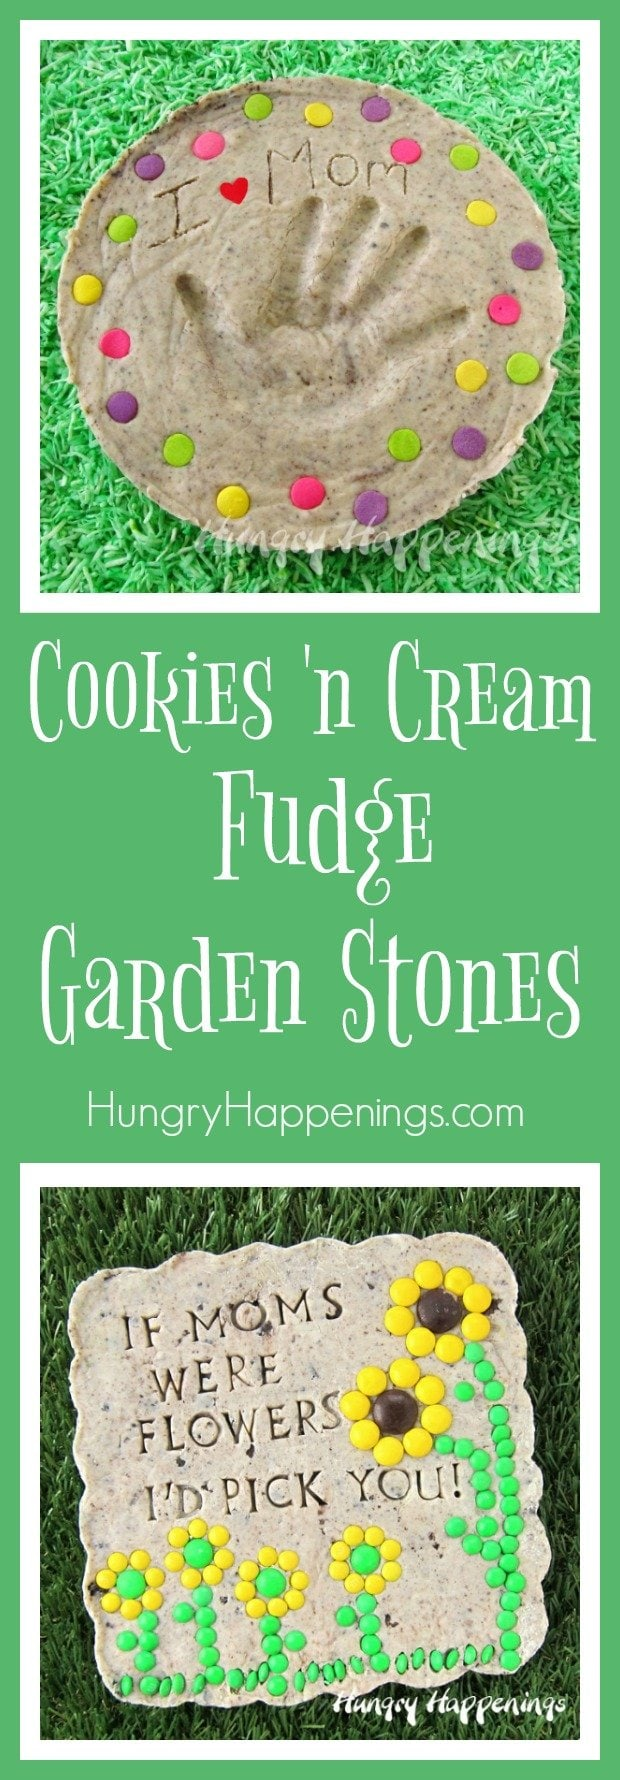 A homemade gift for your mom on Mother's Day will surely win her heart and these edible Cookies and Cream Fudge Garden Stones are a unique treasure she will love.